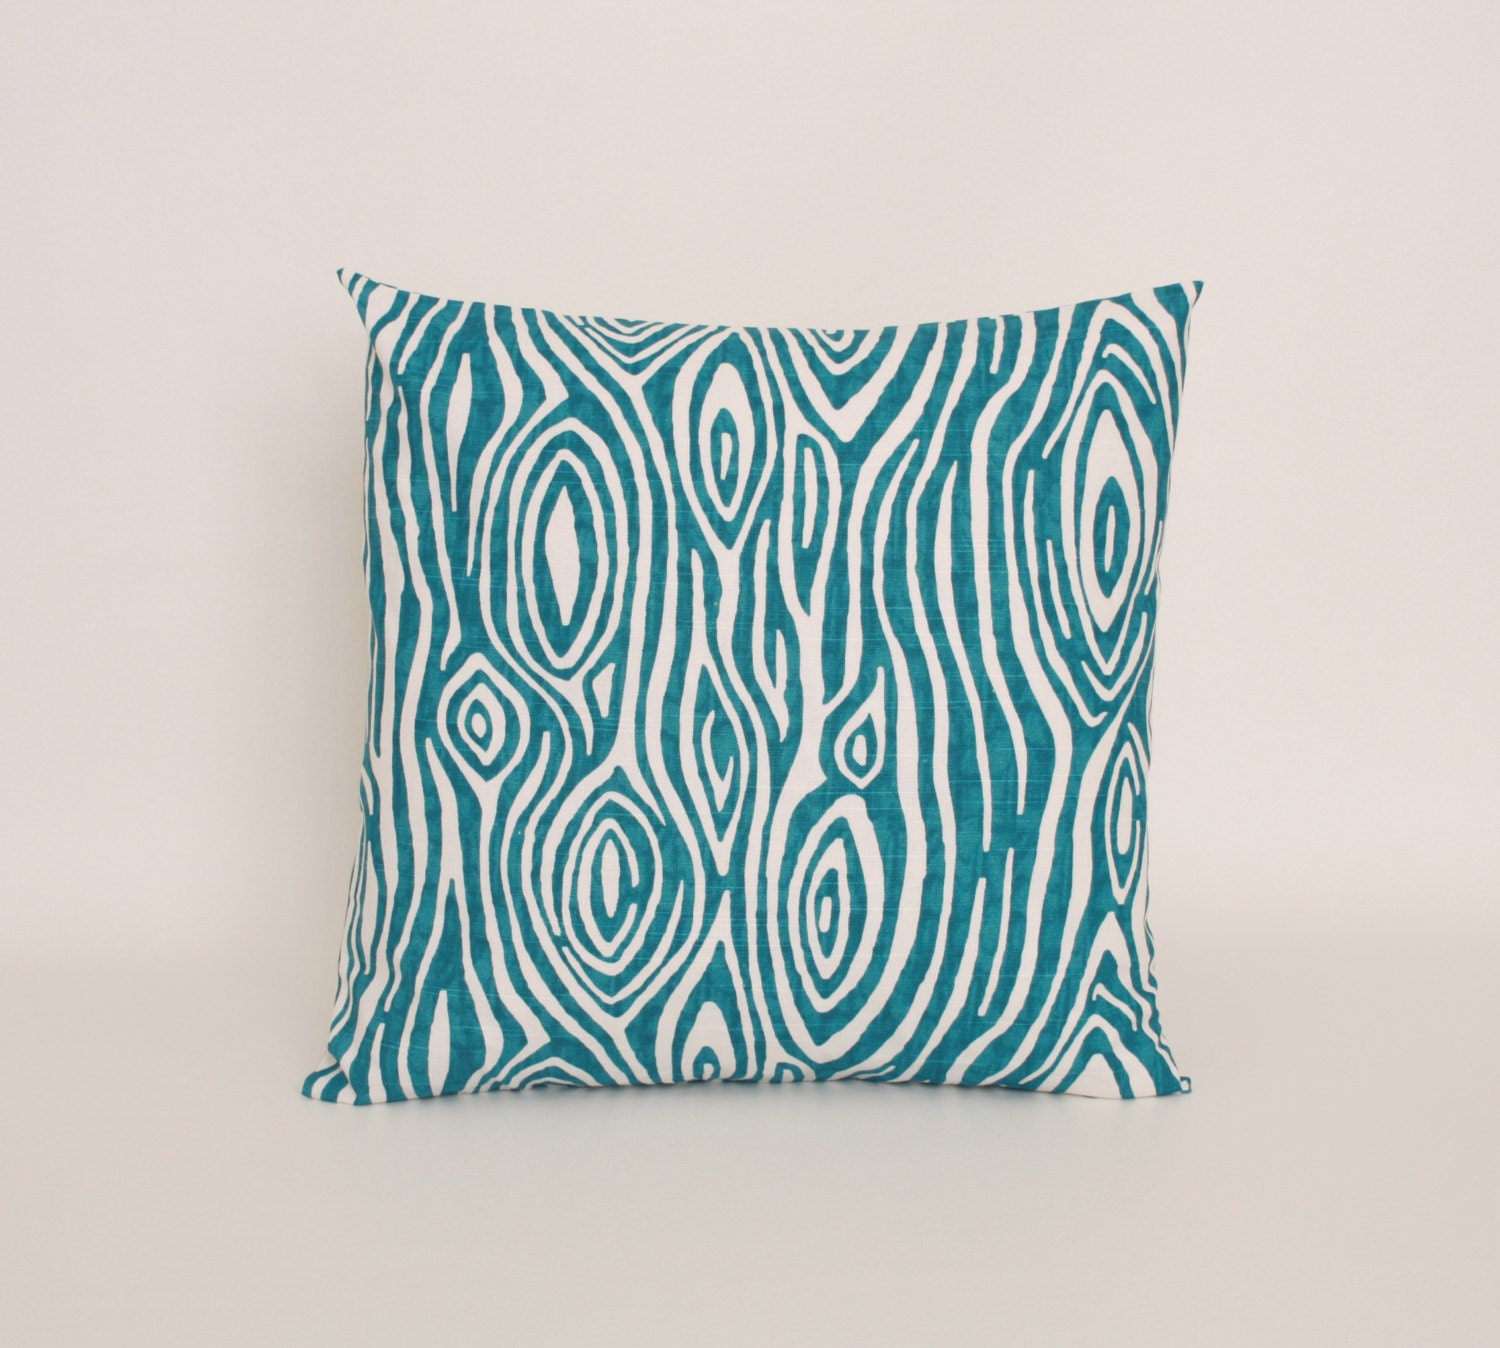 Teal Blue Throw Pillow : Blue Throw Pillow Cover Teal Blue Accent by DimensionsHomeDecor